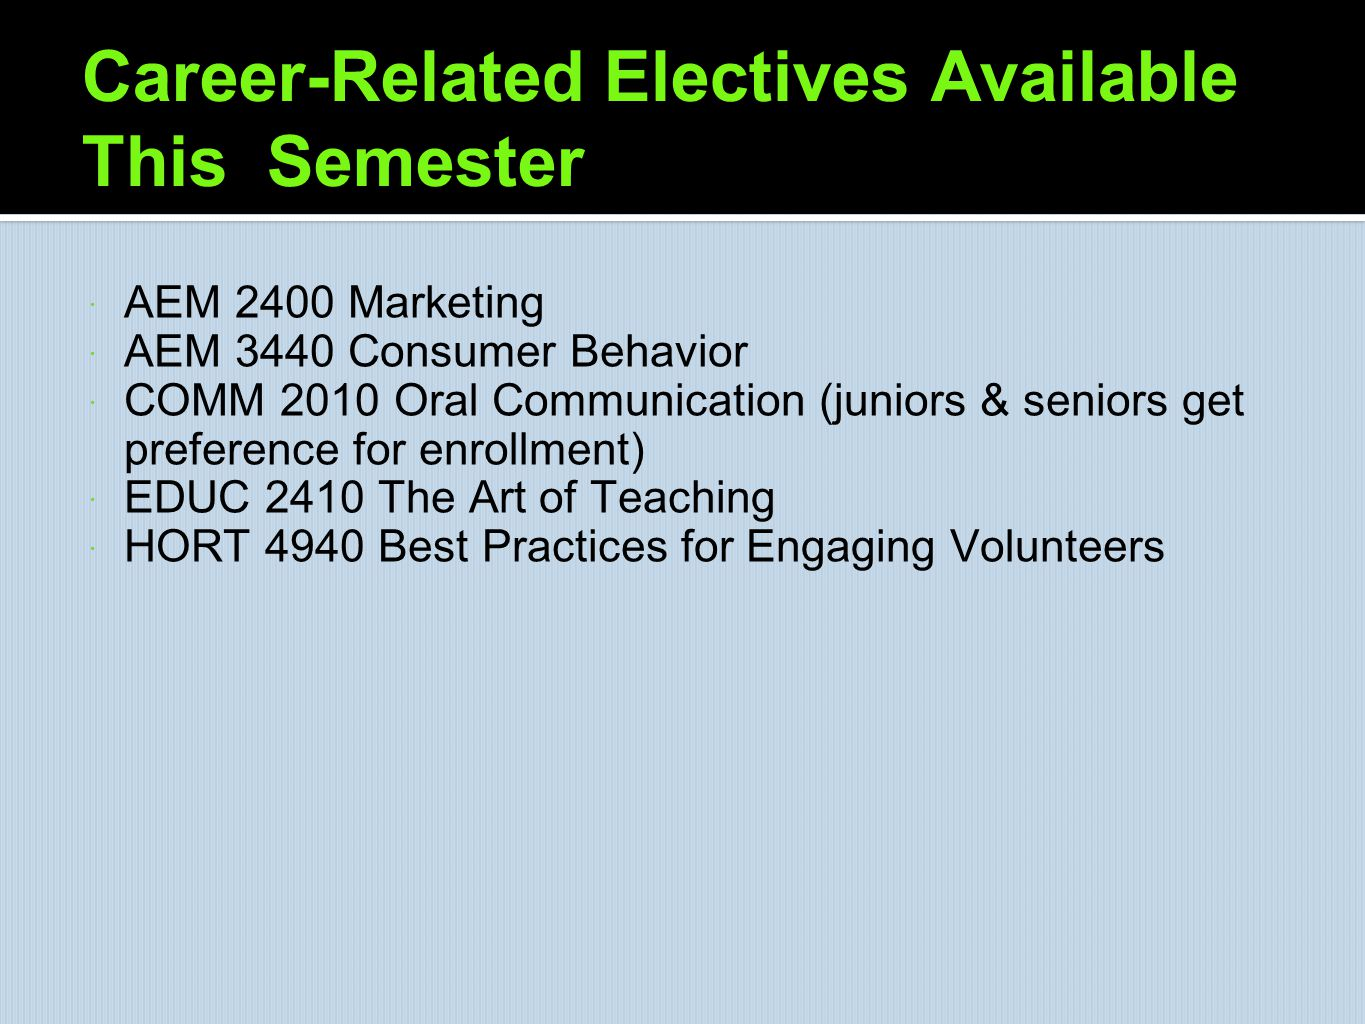 Career-Related Electives Available This Semester